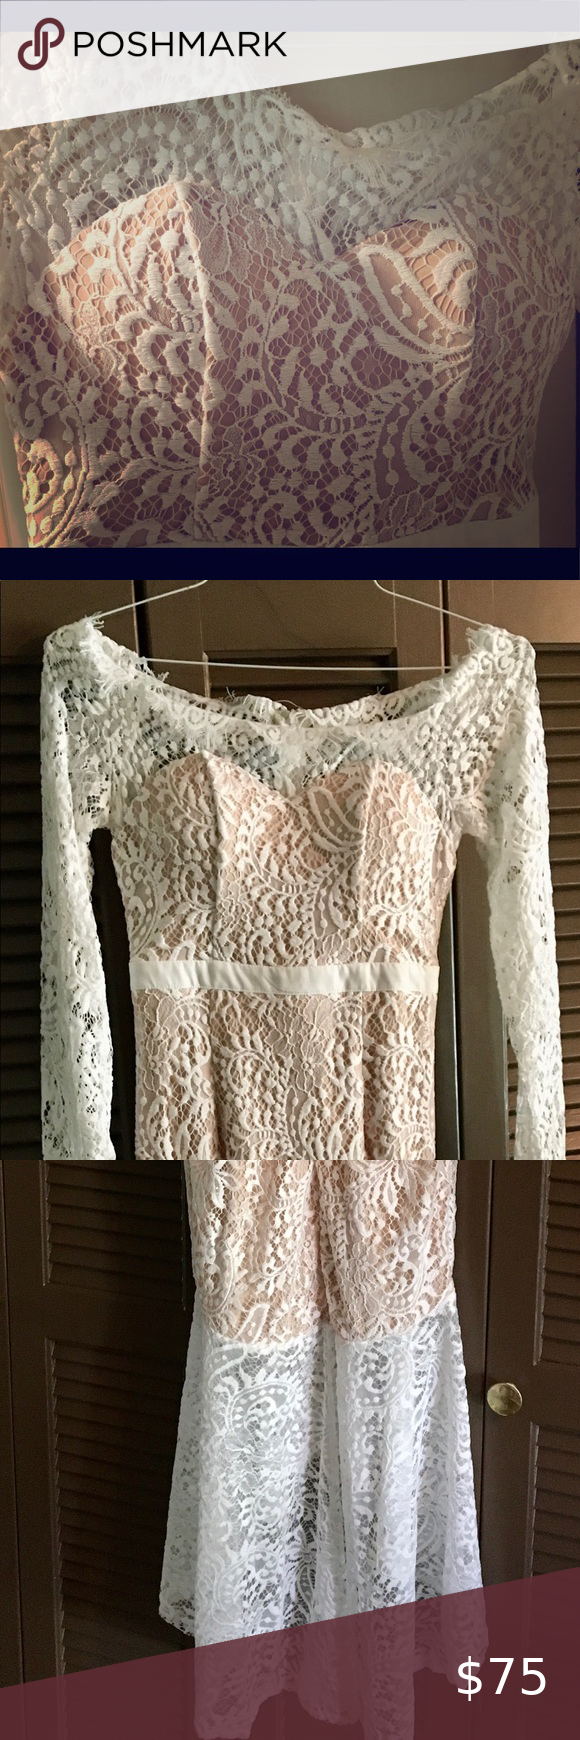 White Lace Dress With Tan Underlay Never Worn Lace White Dress Lace Dress White Lace [ 1740 x 580 Pixel ]